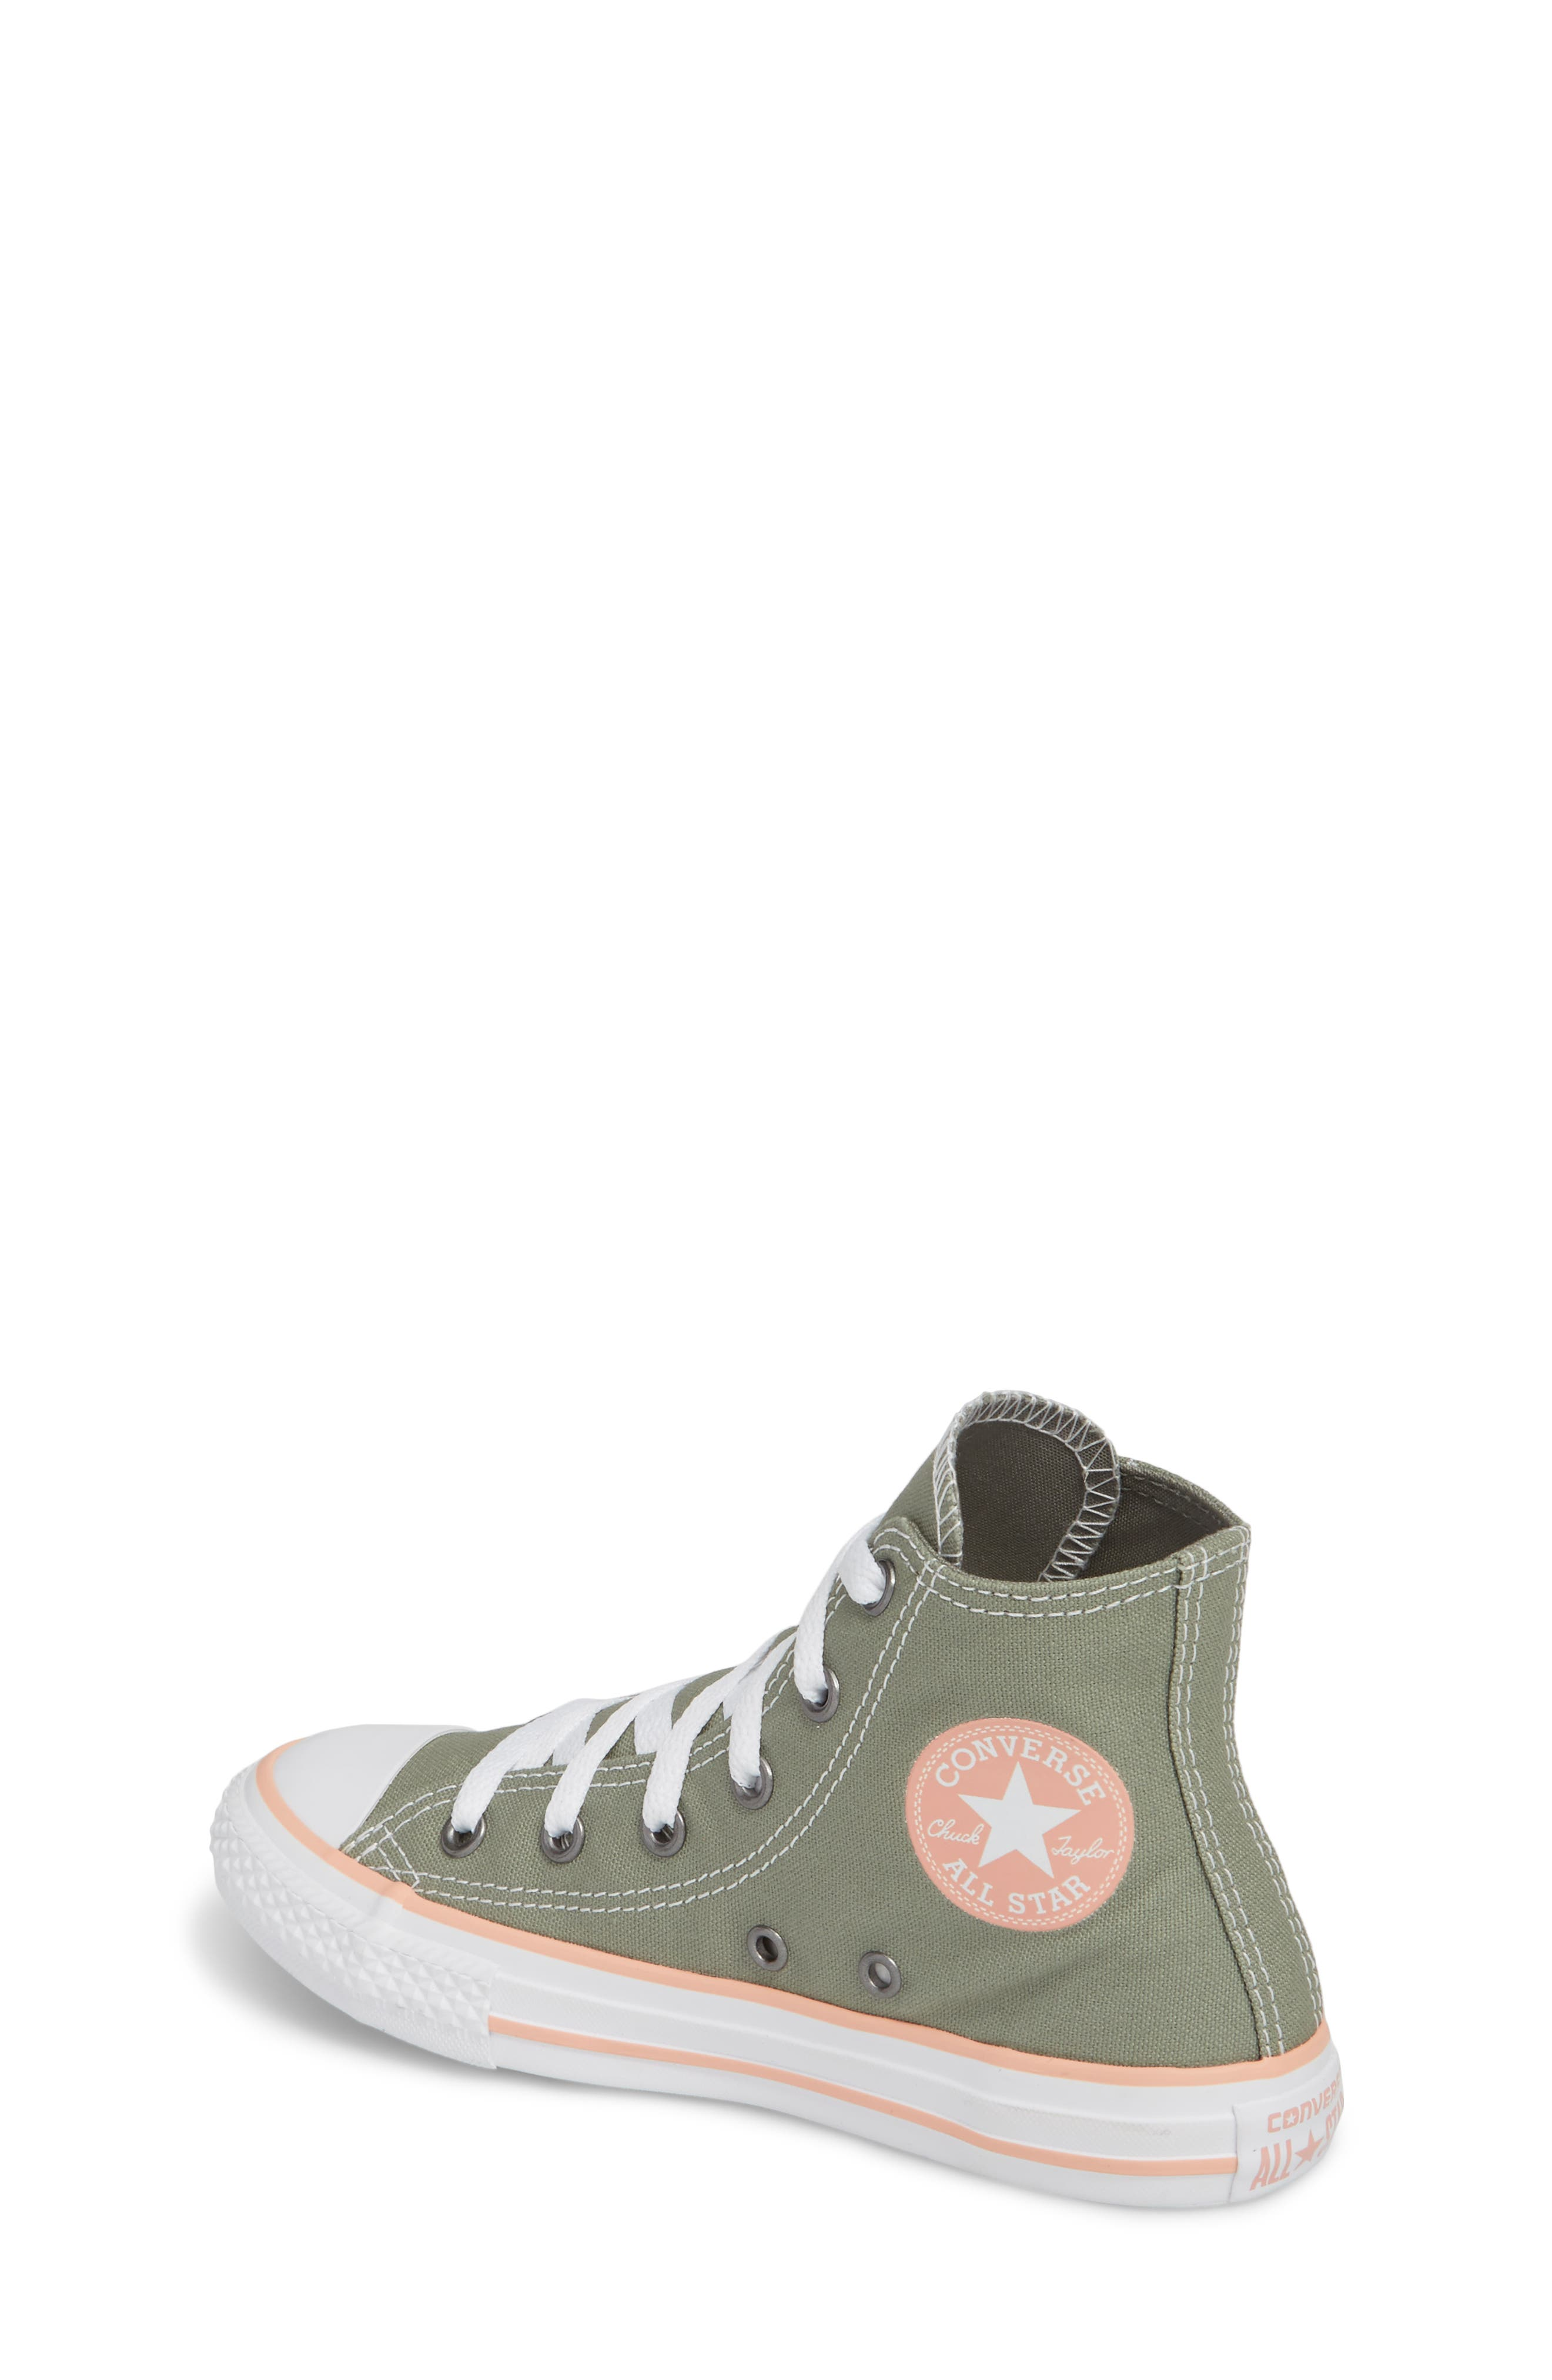 Alternate Image 2  - Converse Chuck Taylor® All Star® High Top Sneaker (Baby, Walker, Toddler, Little Kid & Big Kid)